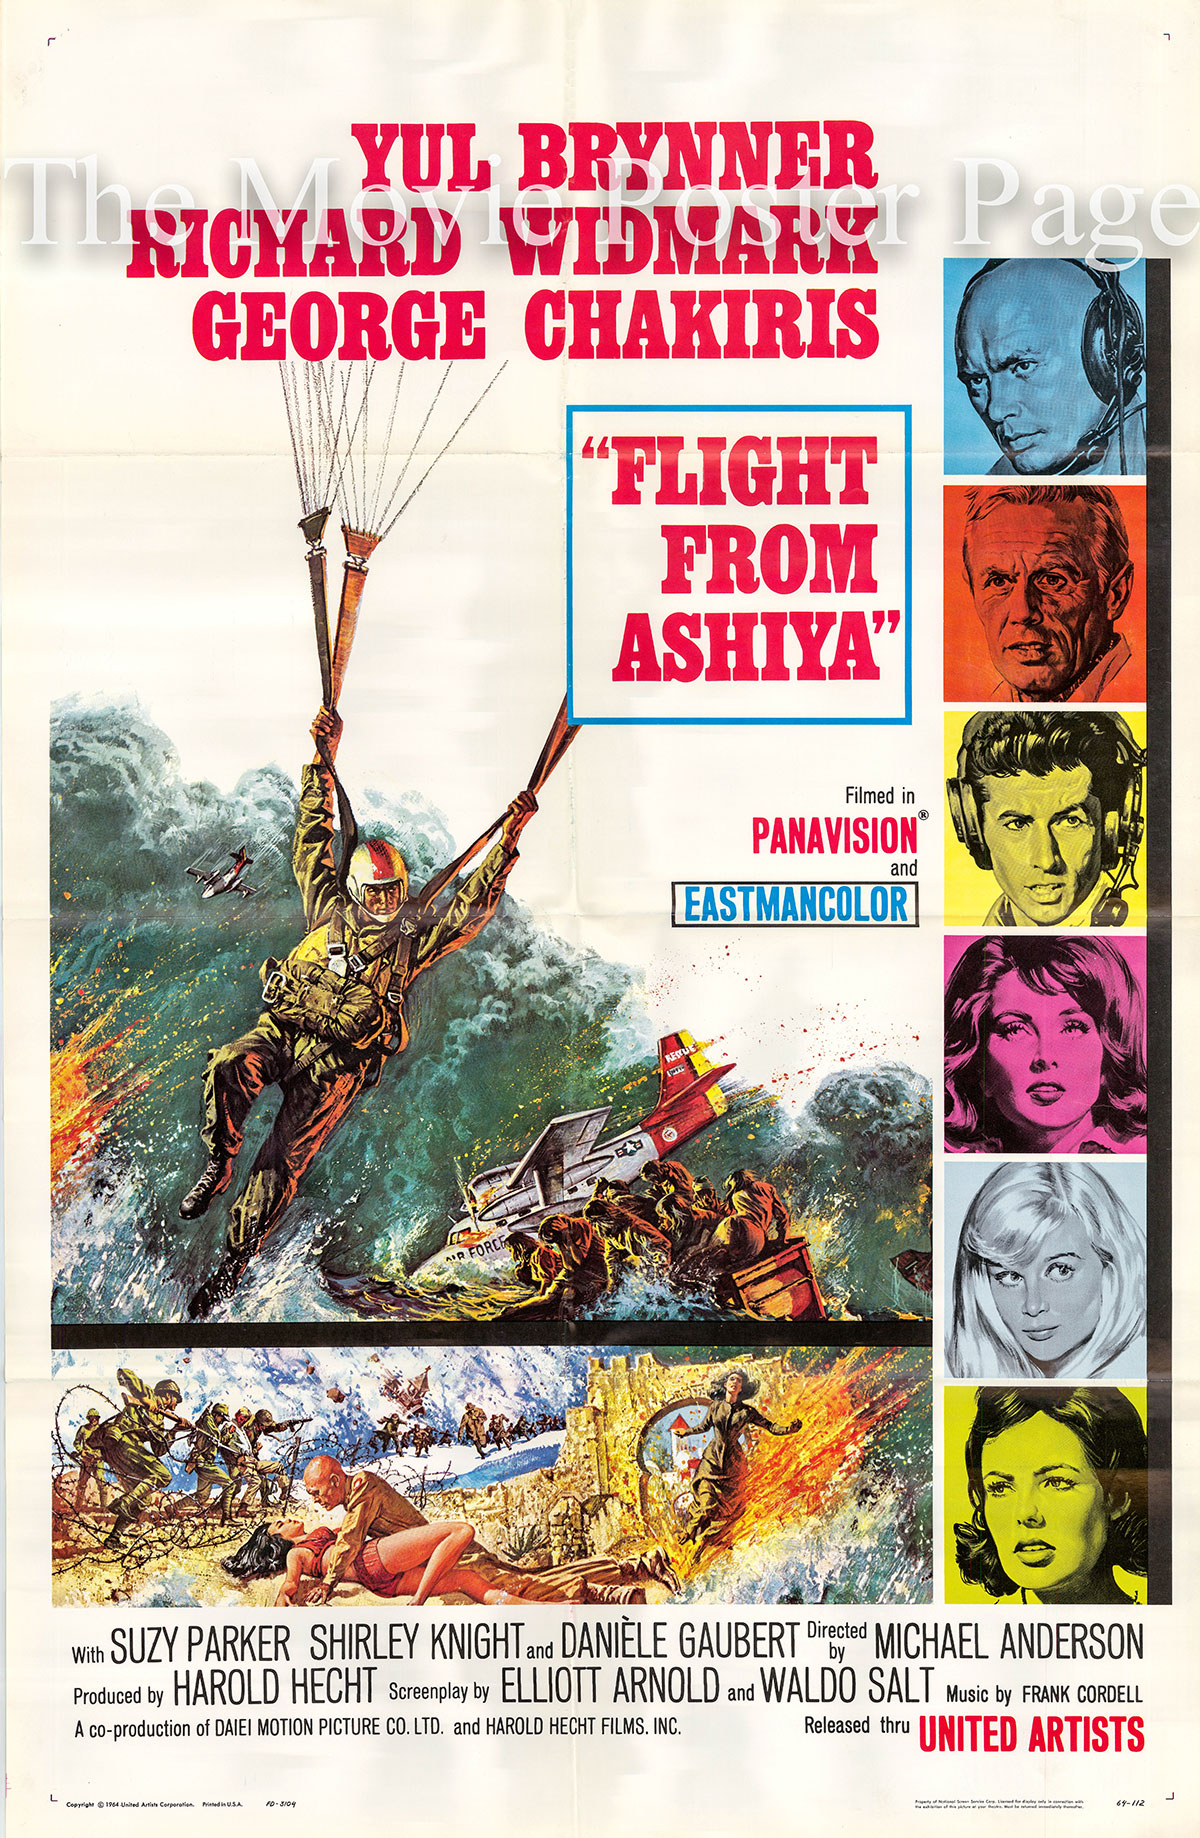 Pictured is a US one-sheet poster for the 1964 Michael Anderson film Flight from Ashyia starring Yul Brynner as Mike Takashima.